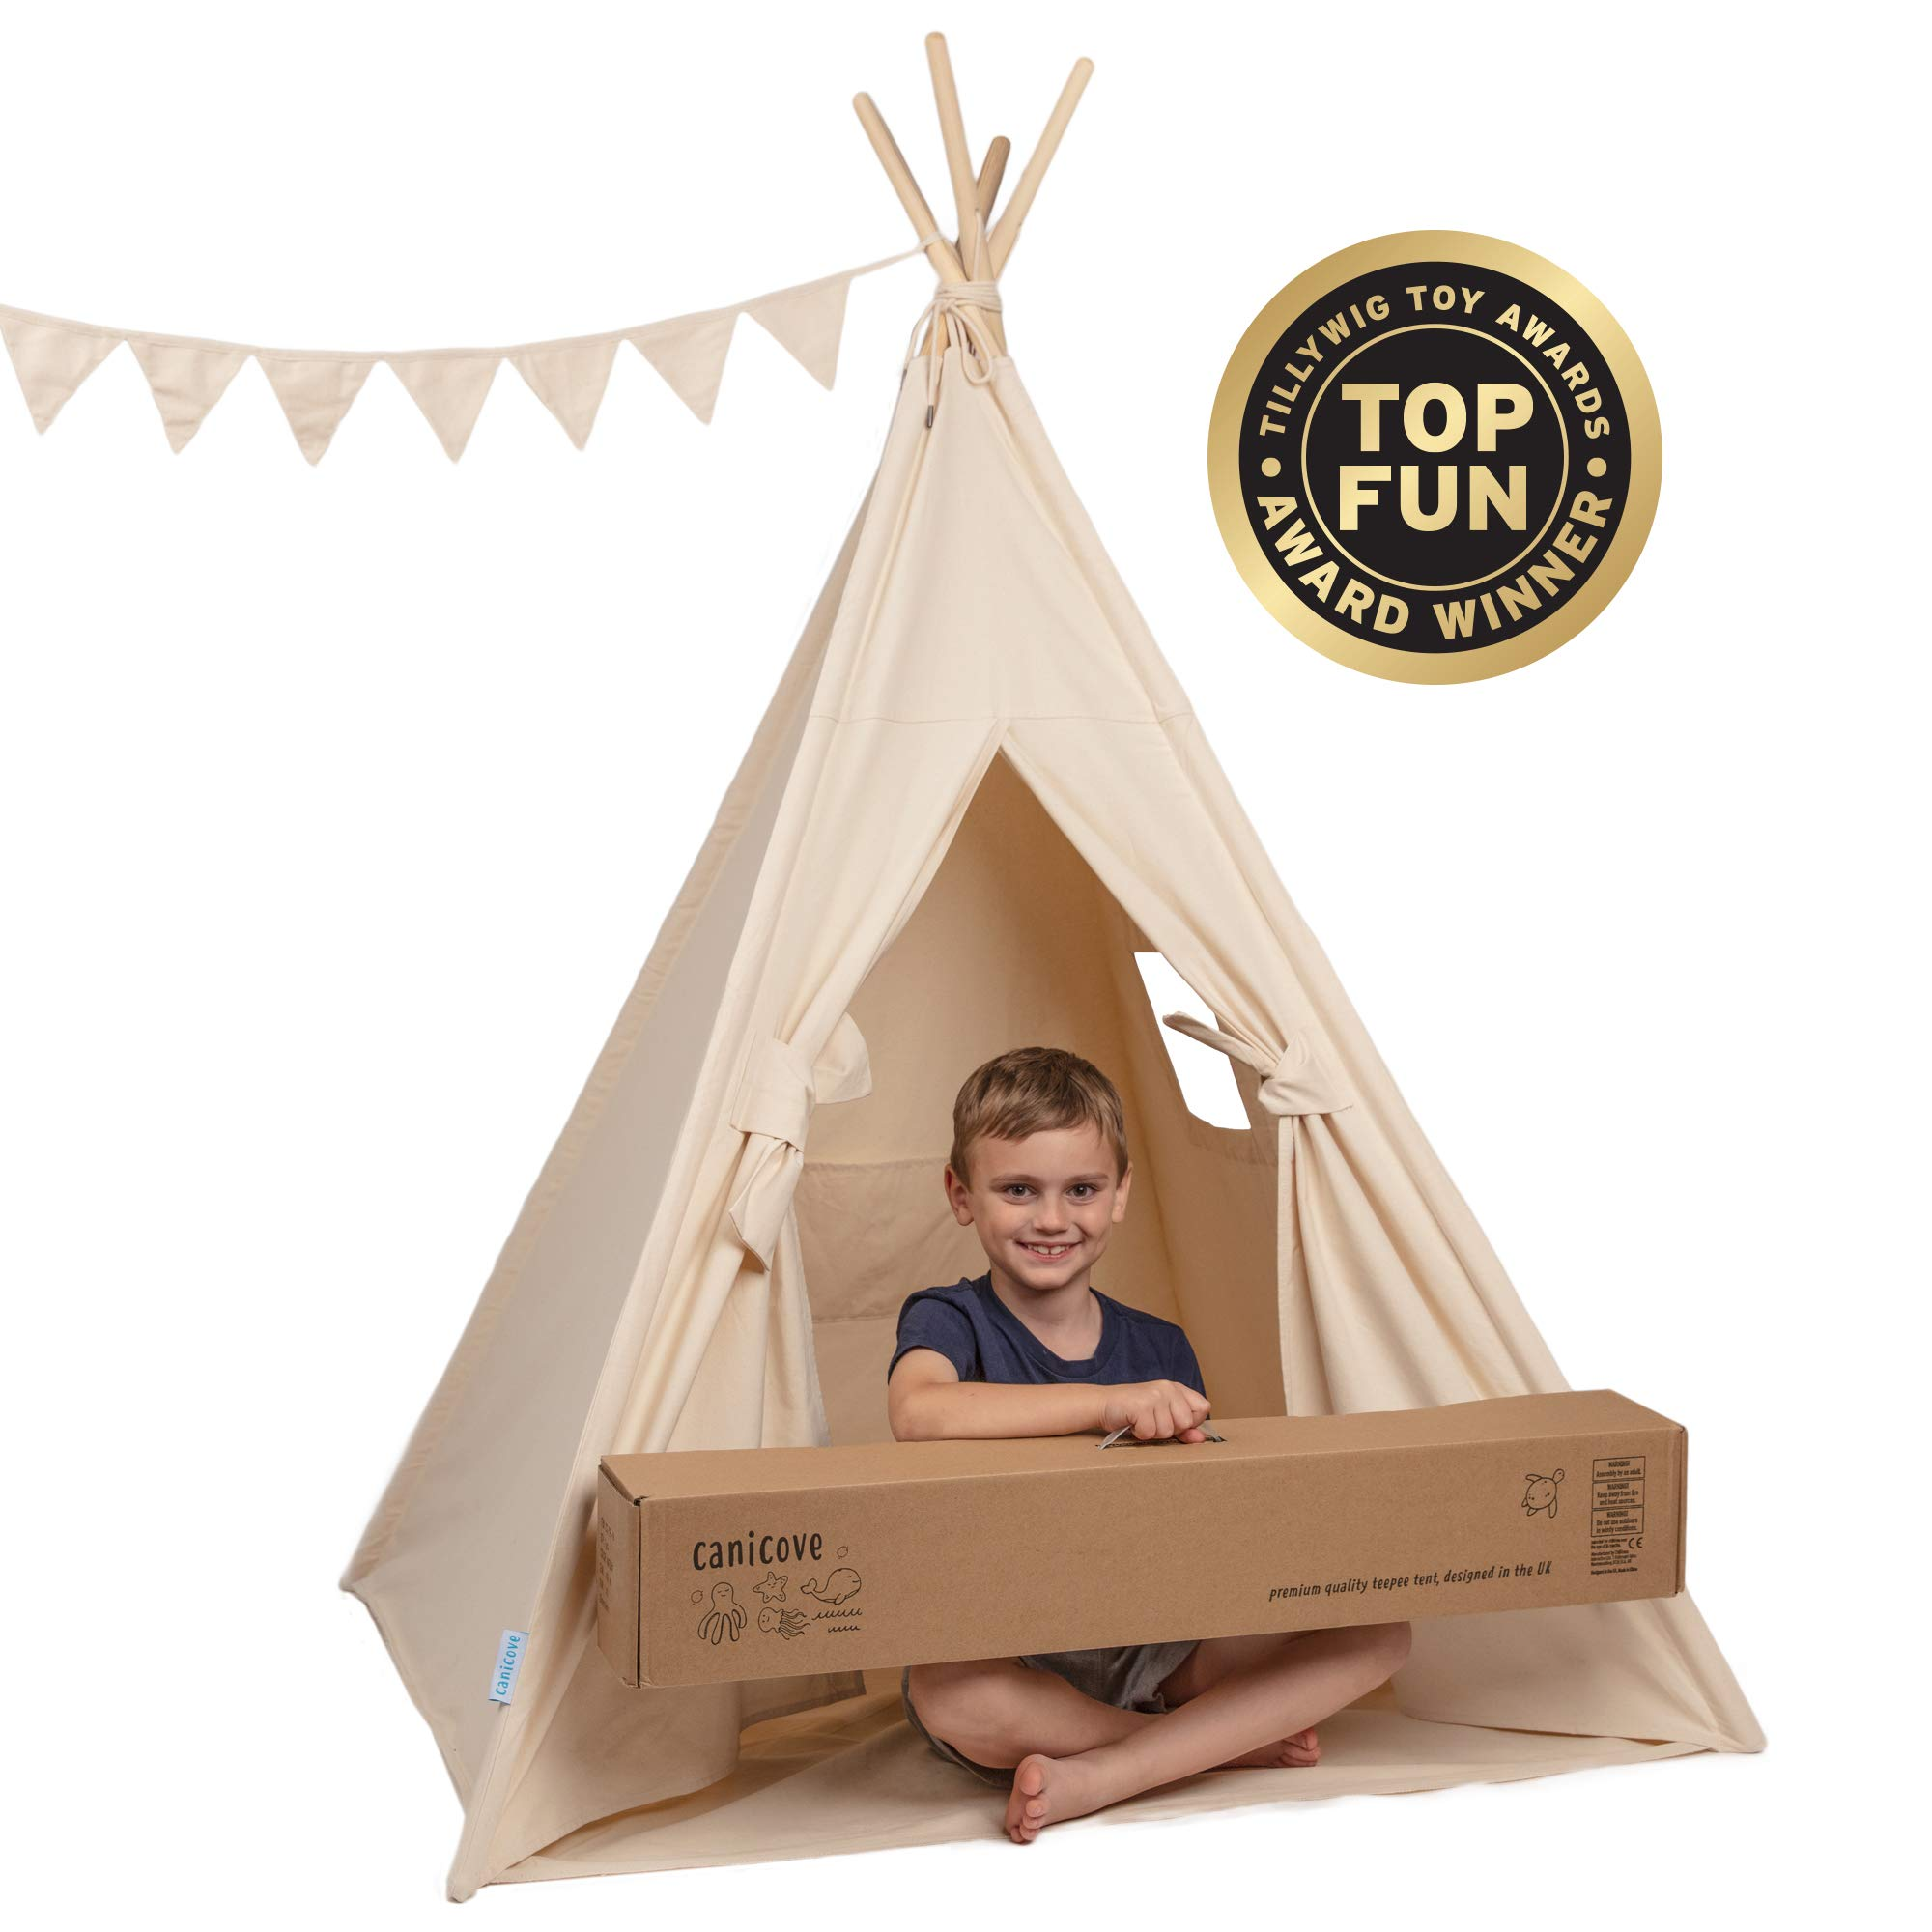 Canicove Teepee Tent for Kids - Award Winning 100% Cotton Play Tent - Large Indoor/Outdoor Tipi for Boys & Girls + Free Fun Flags! by Canicove (Image #1)